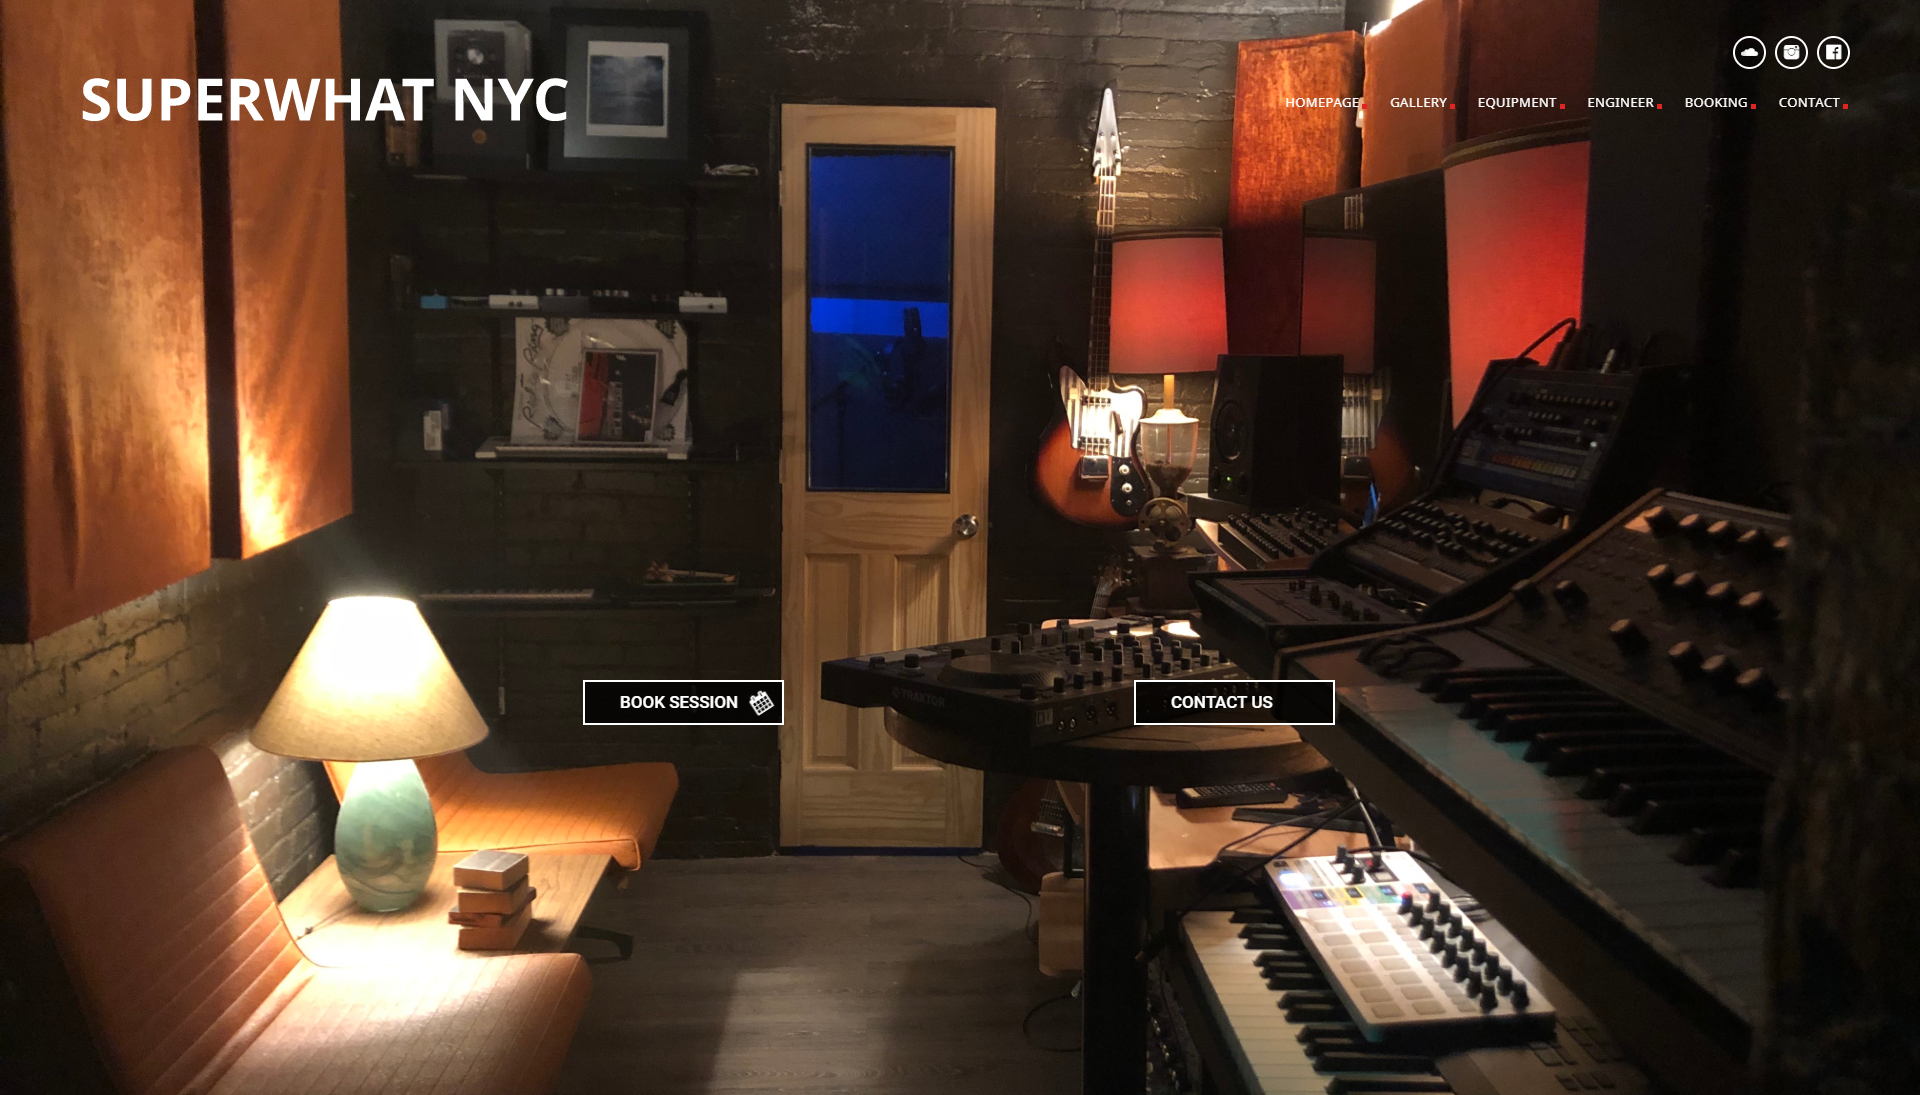 Music Studio Website Design / Website Developer | NEW YORK